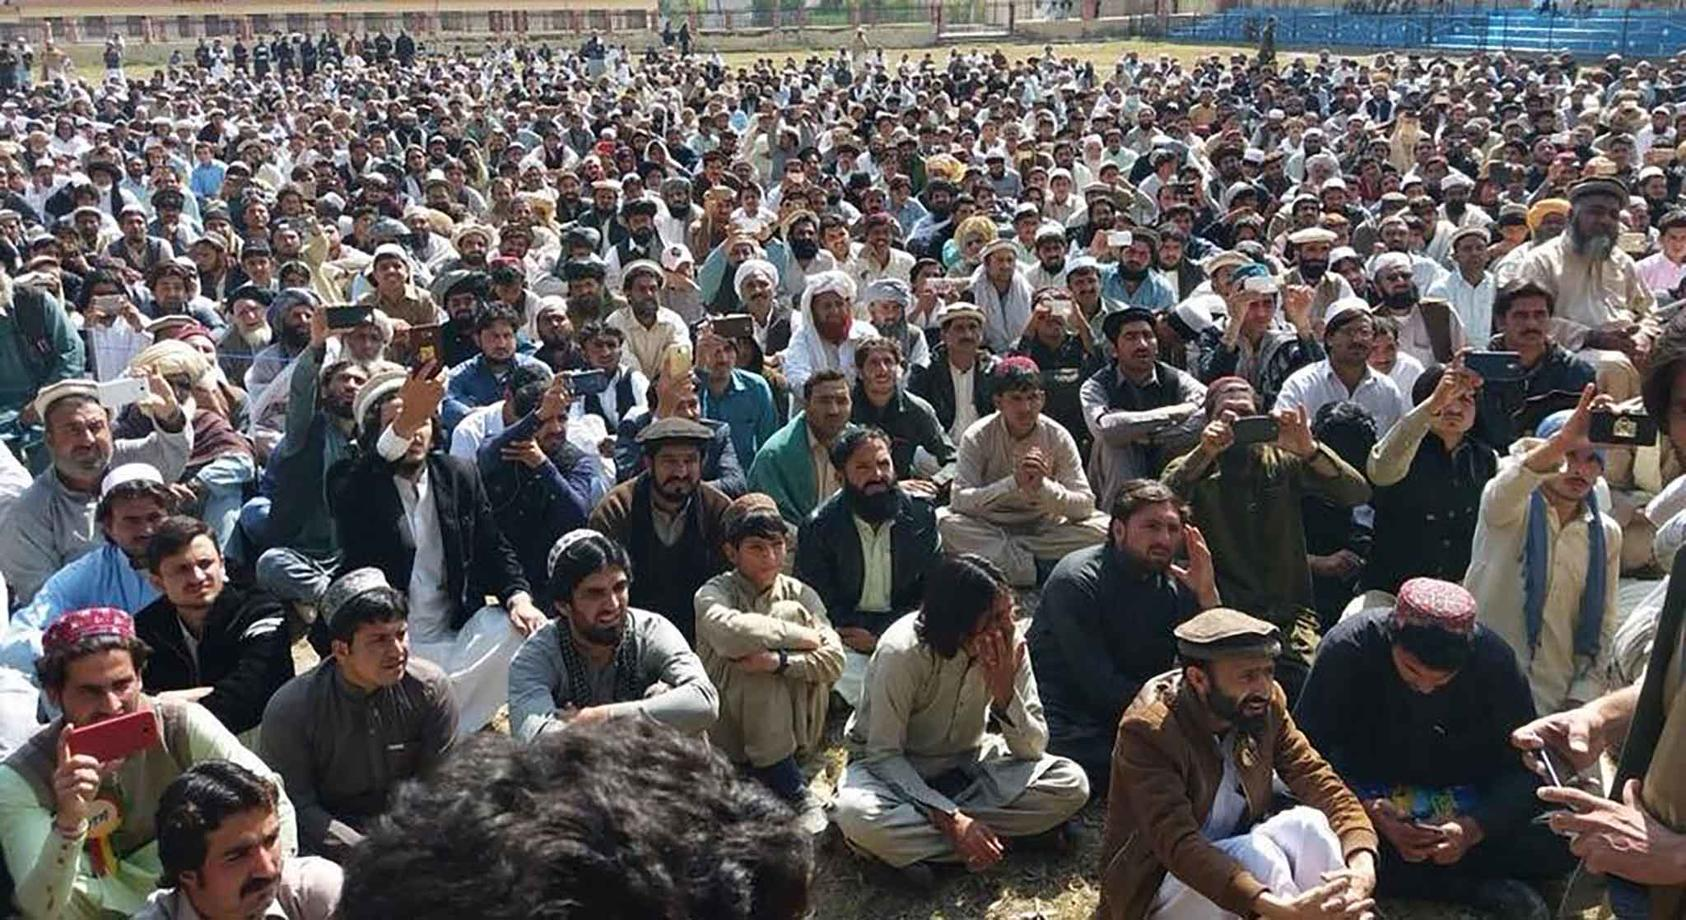 In March, hundreds of Pashtun men attended a protest at the North Waziristan town of Mir Ali, one of dozens of rallies since January. (RFE-RL)